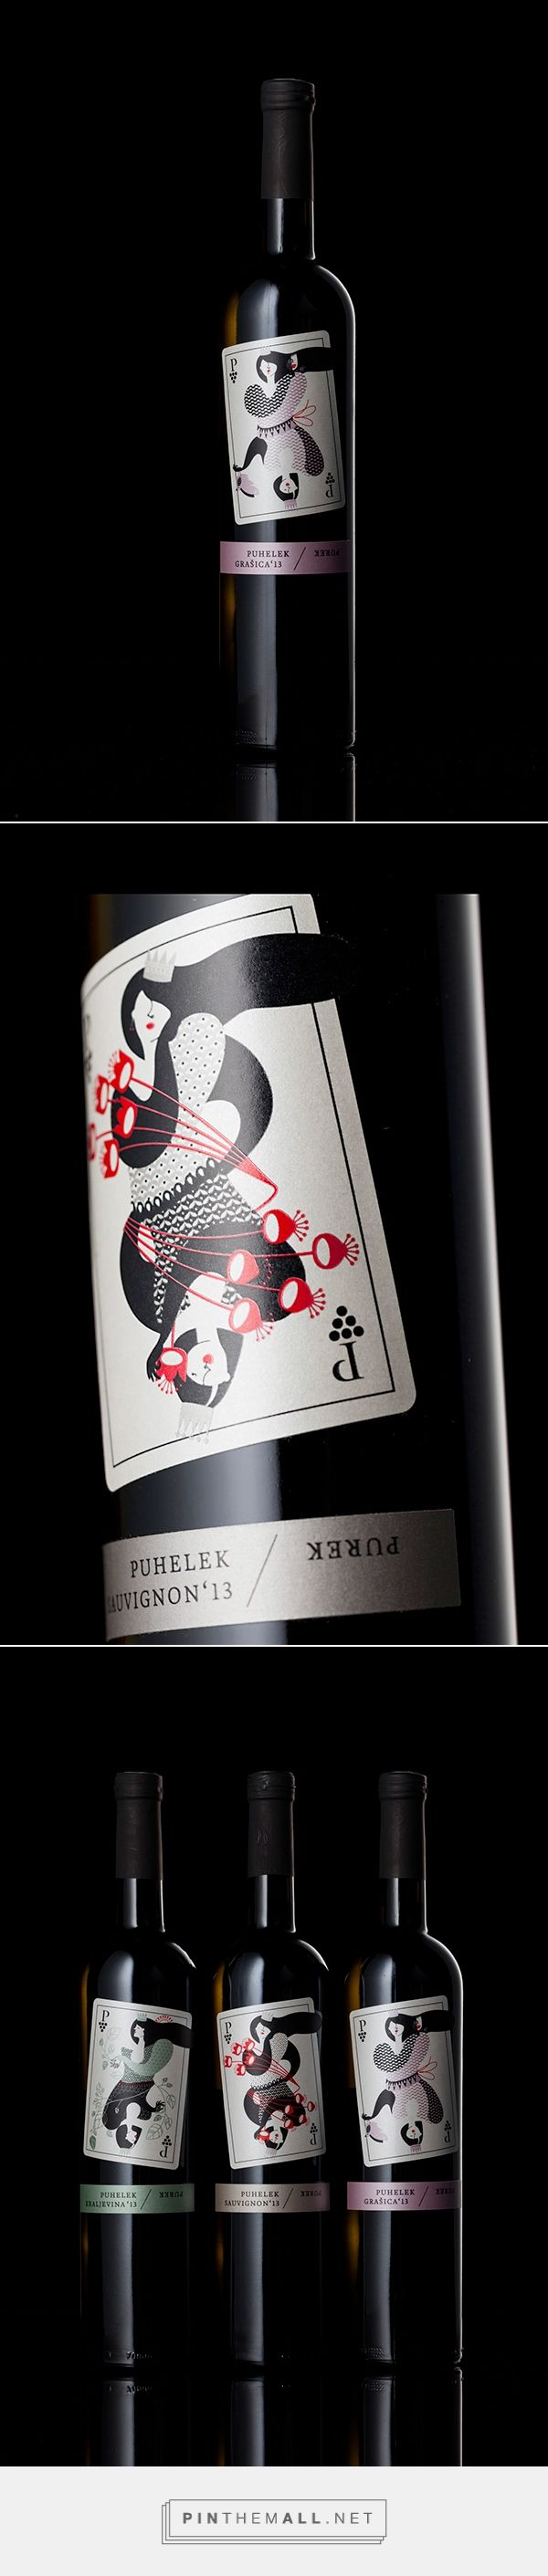 Puhelek-Purek wine label on Behance by Željka Županić, Zagreb, Croatia curated by Packaging Diva PD. Idea was to make illustrations of the Queen of playing cards for all the wine sorts, as the wine is made by two sisters that own a little Croatian winery.